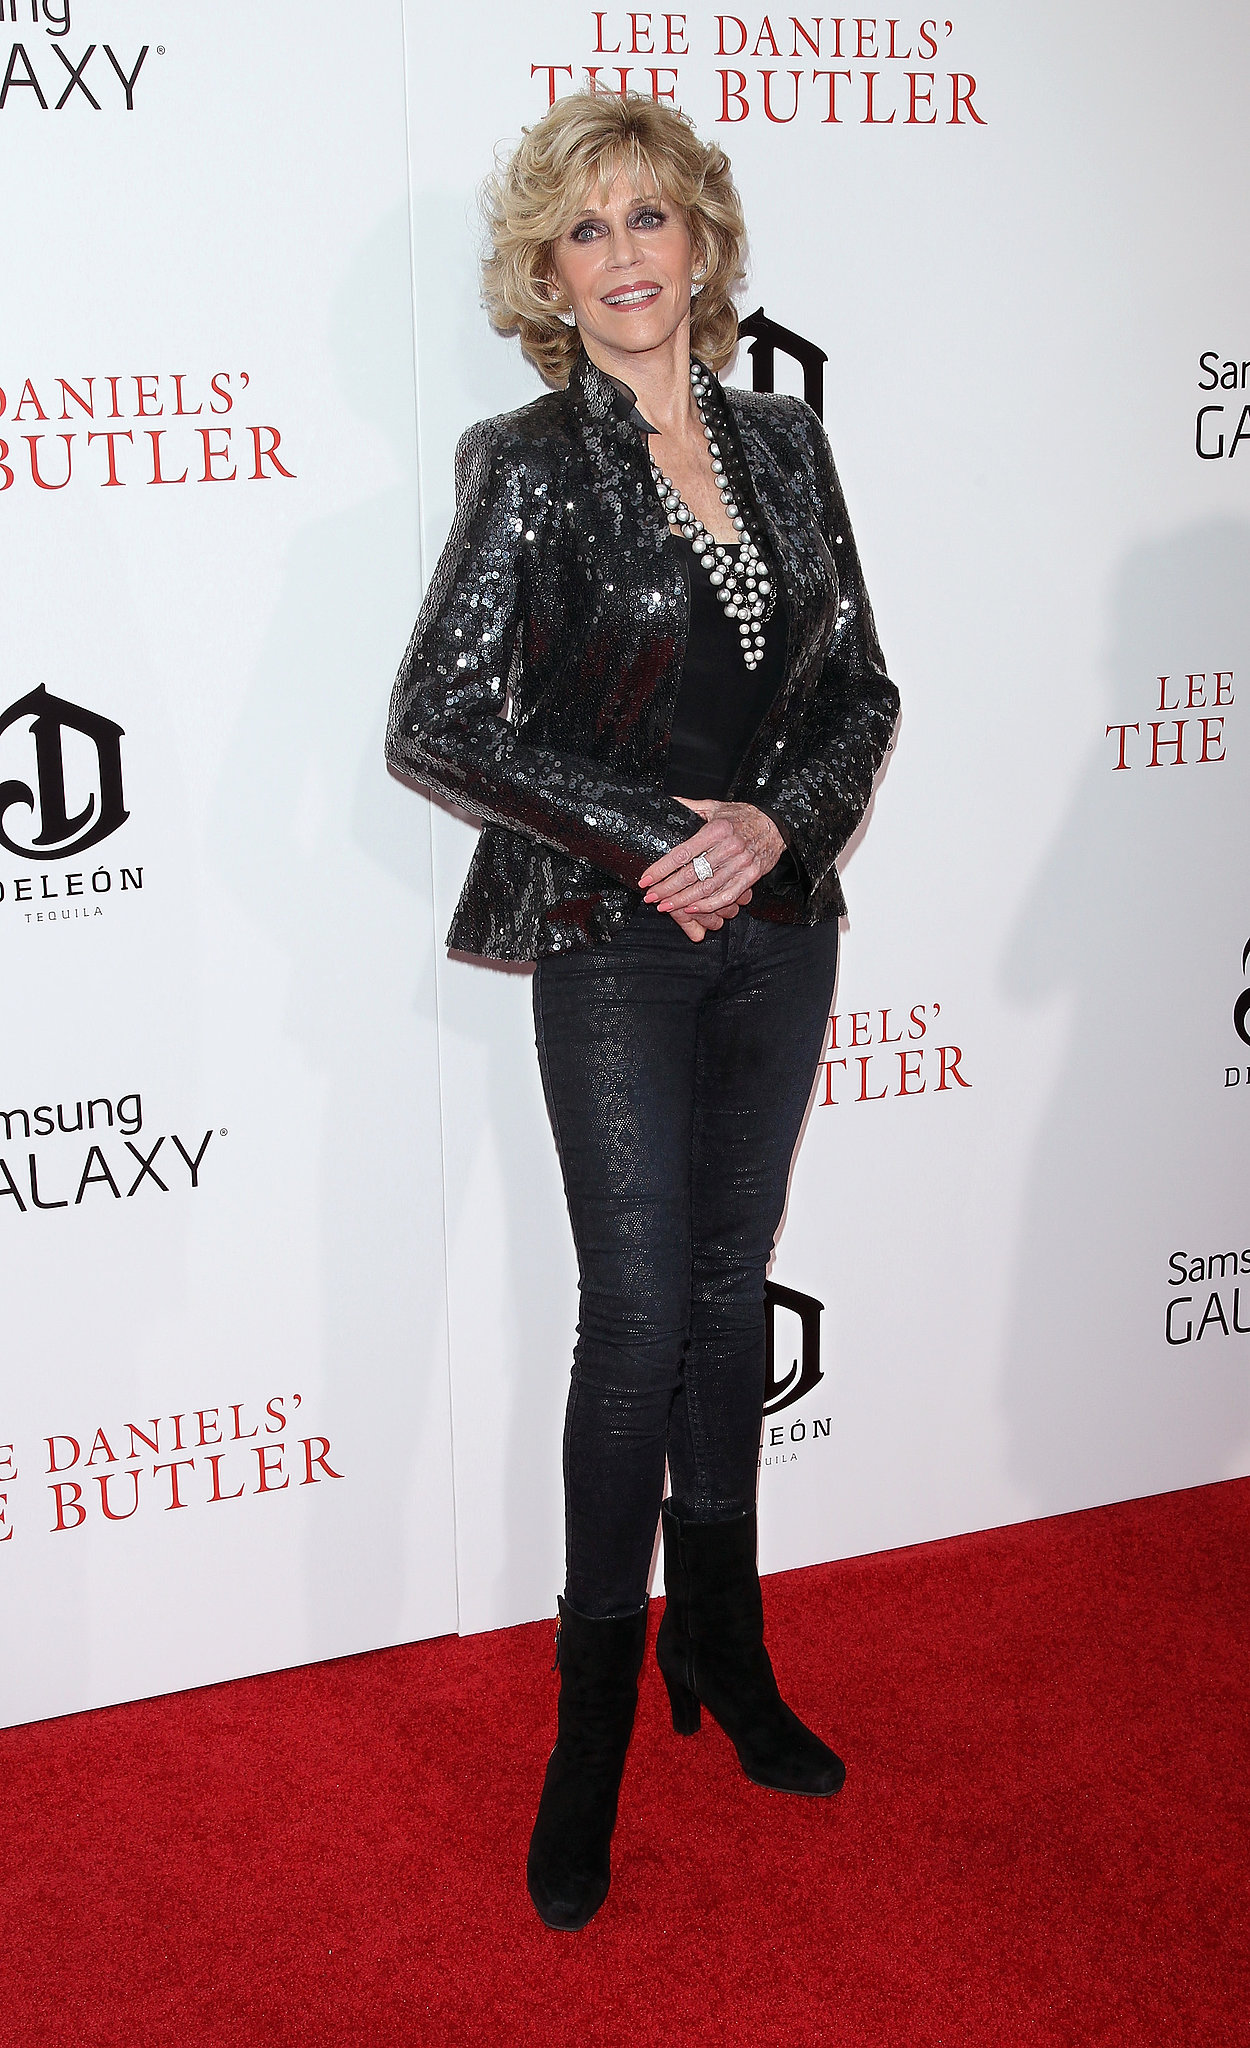 Oprah, Mariah Carey, and More Stars Collide at the Big Butler Premiere